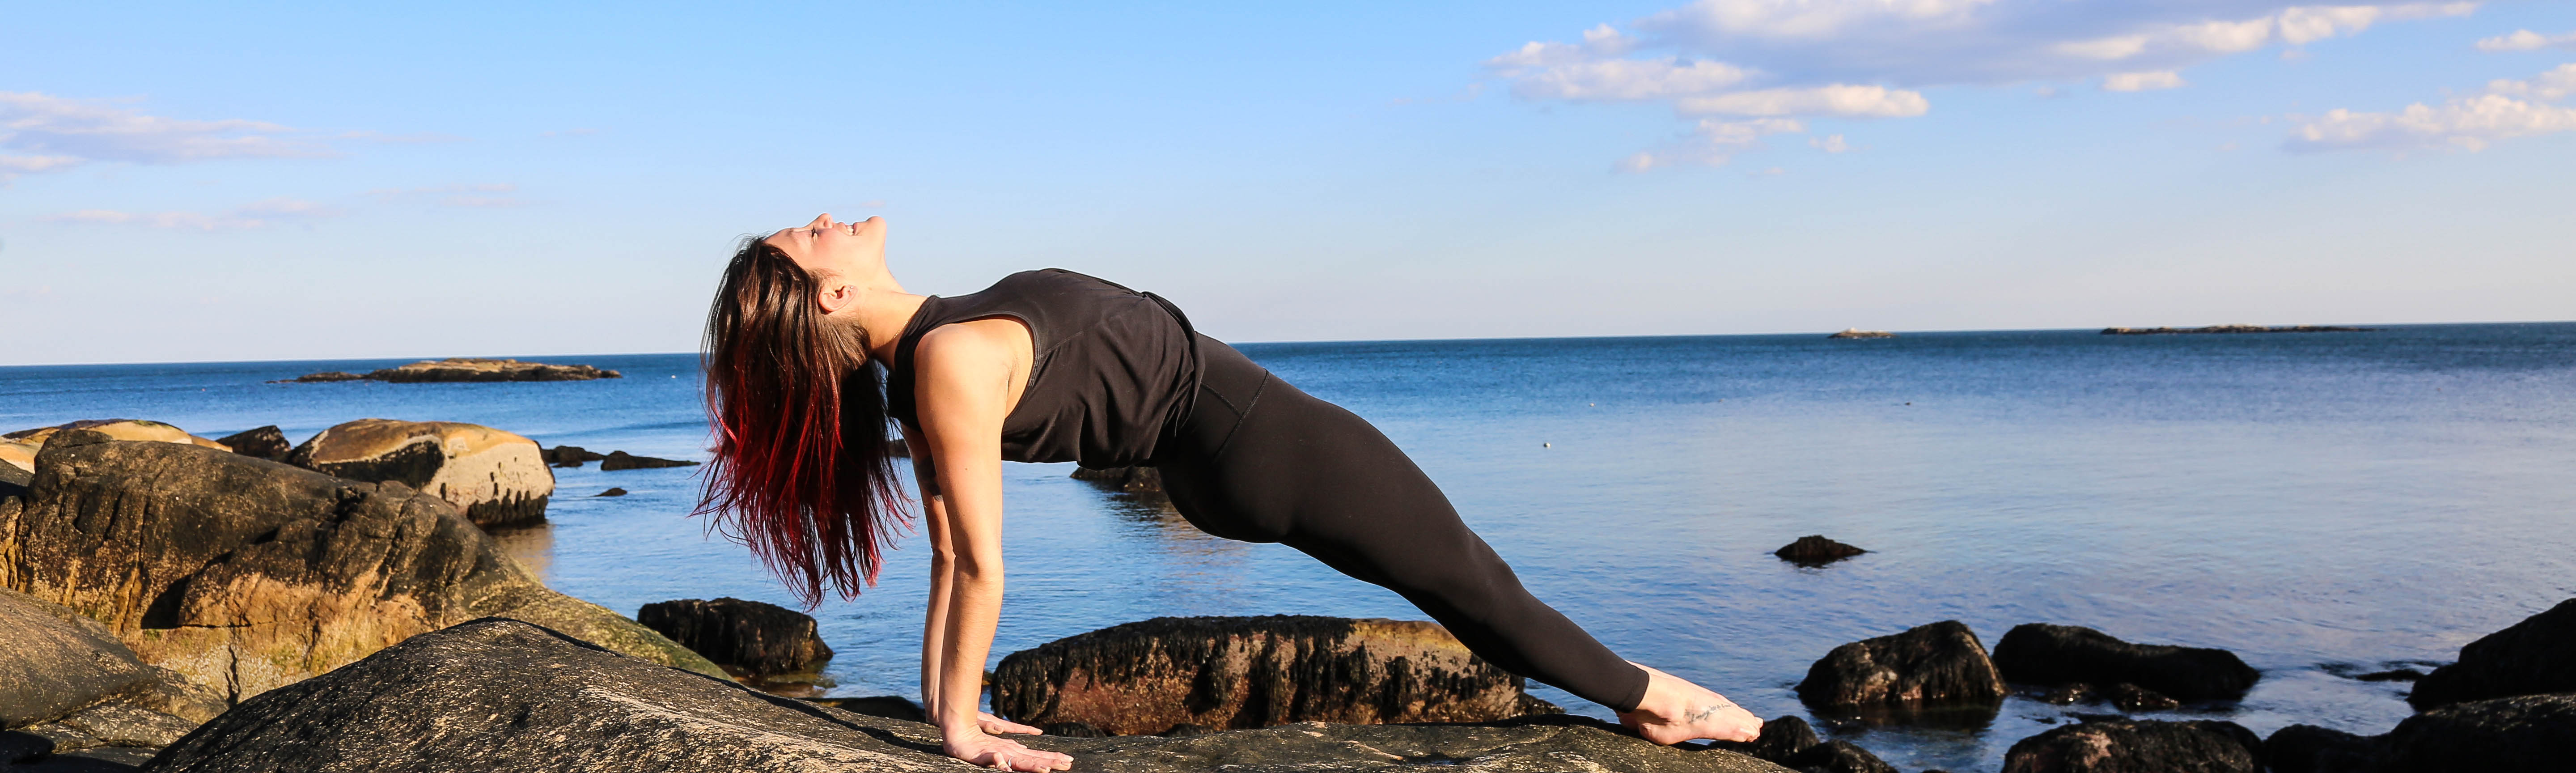 Yoga - Barre - Pilates | Sign Up For a Class Today | Balance Studio